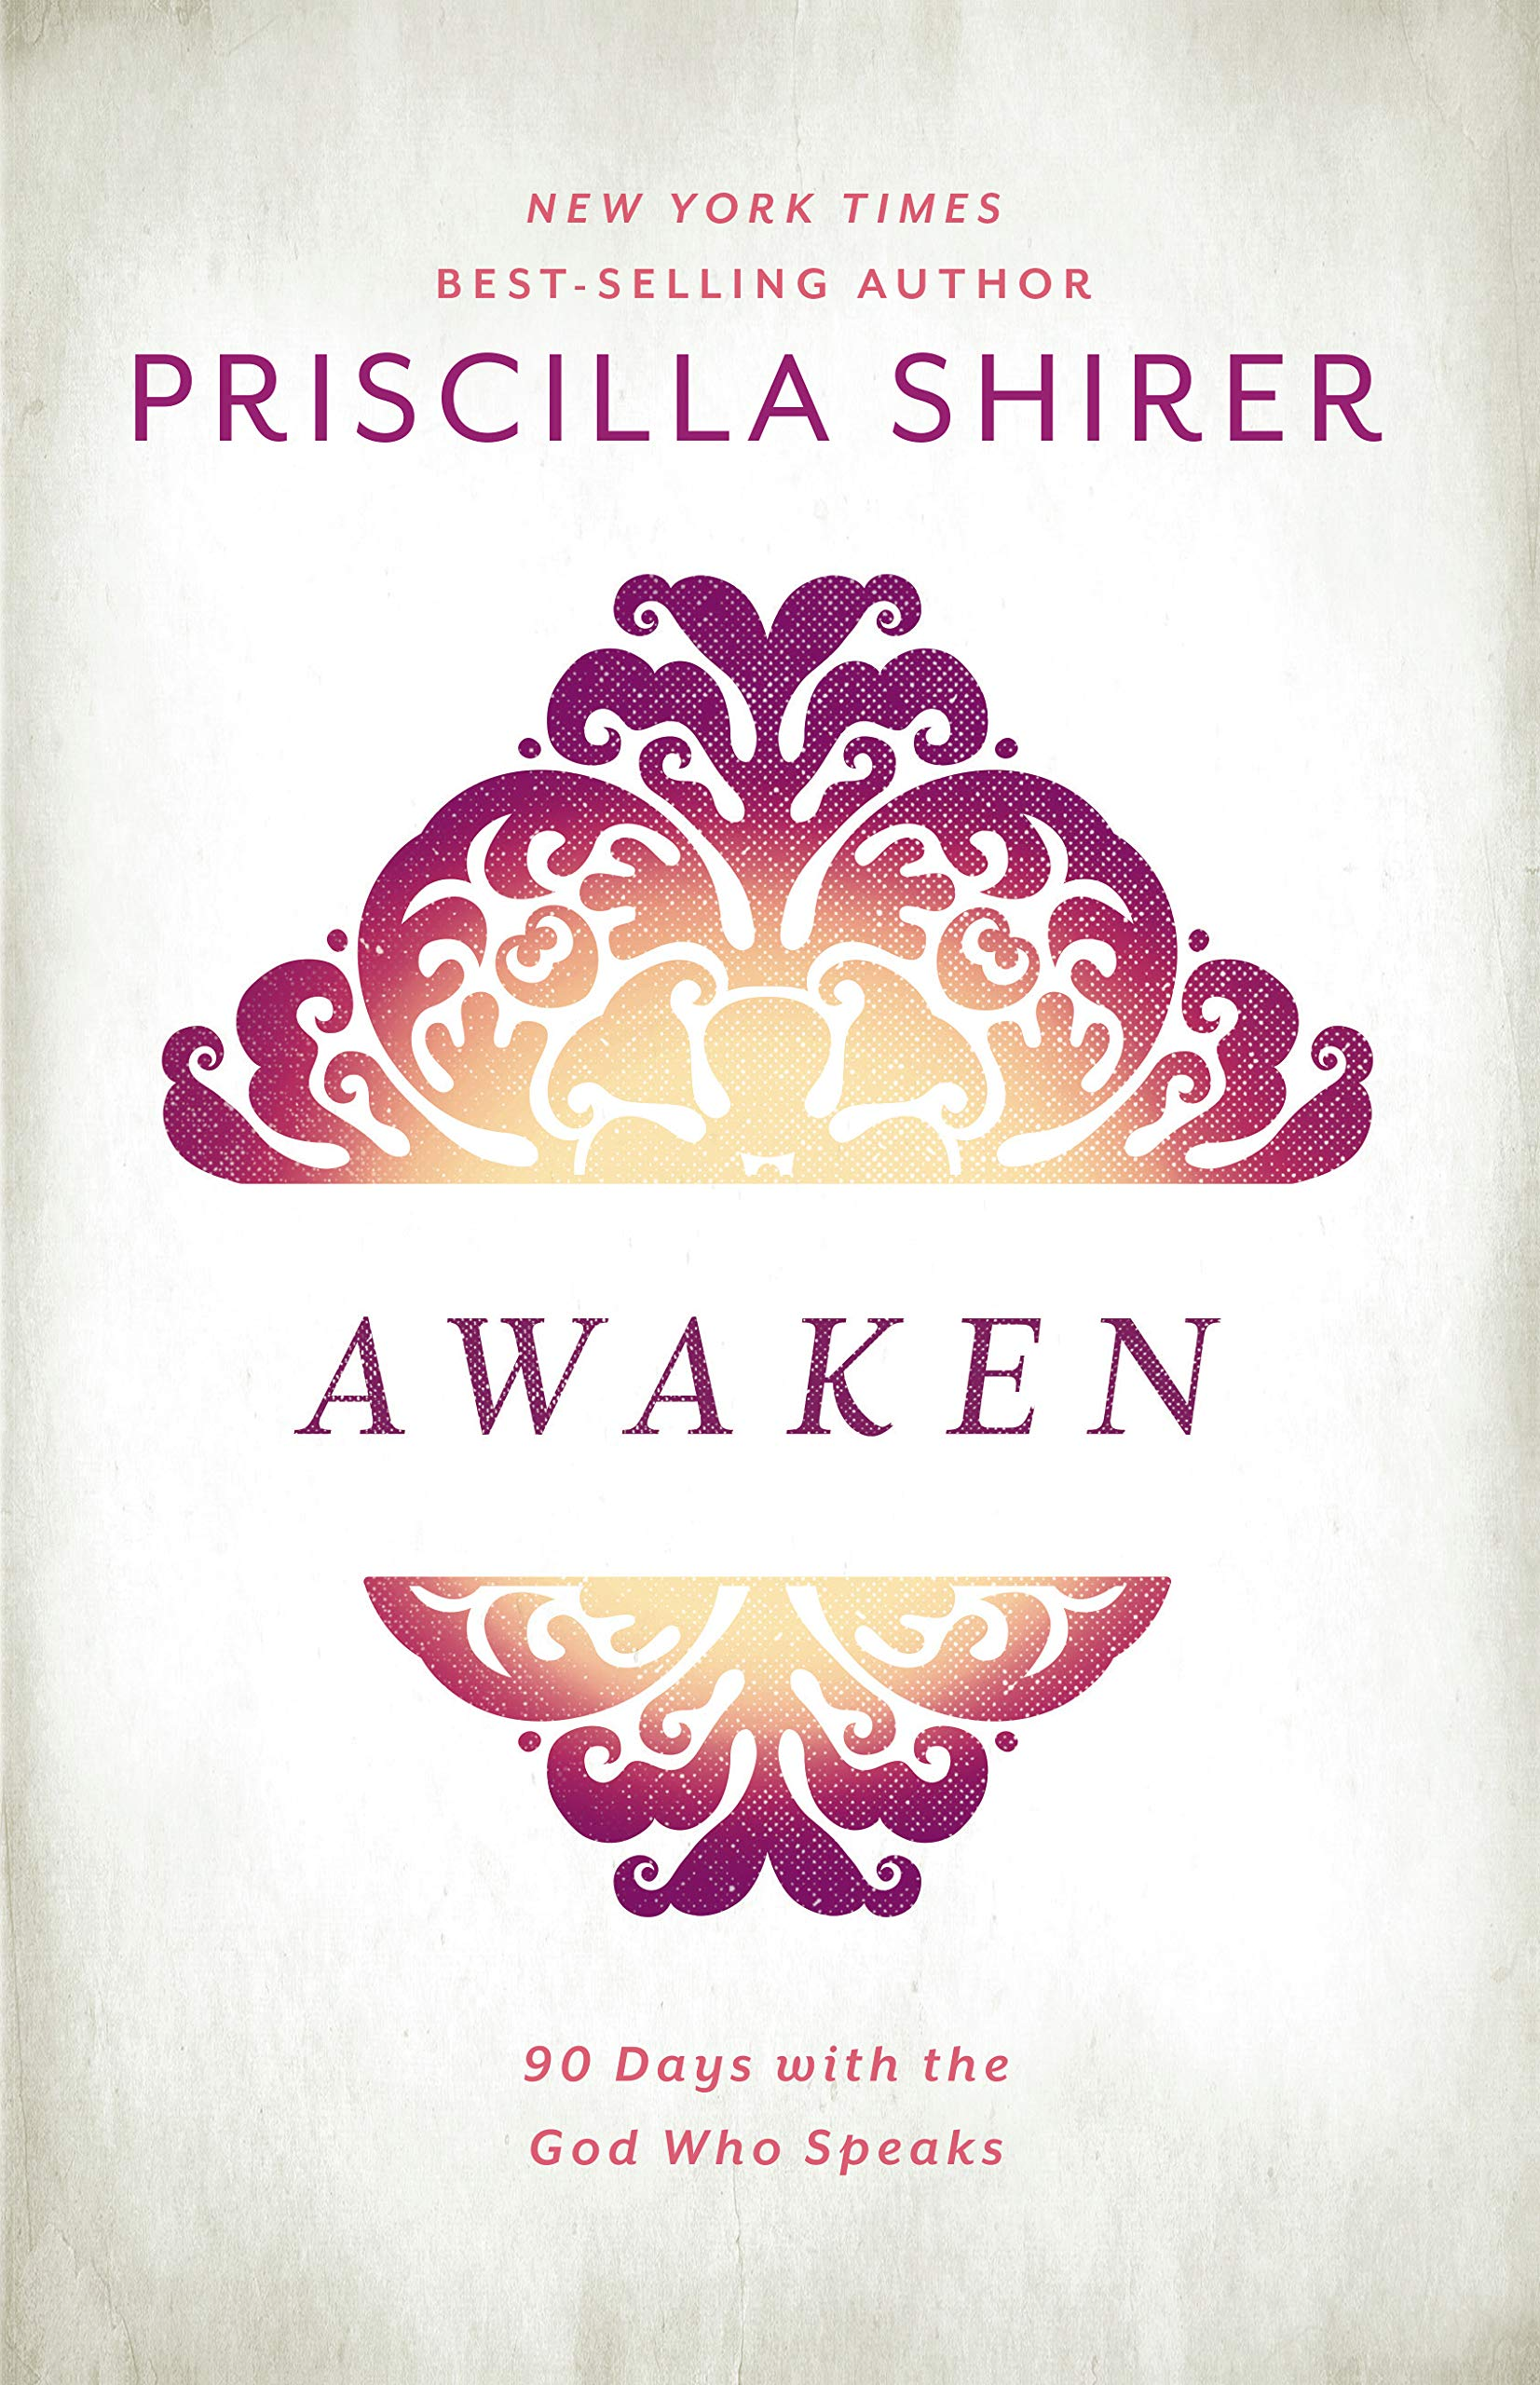 Awaken: 90 Days with the God who Speaks: Priscilla Shirer: 9781462776344:  Amazon.com: Books